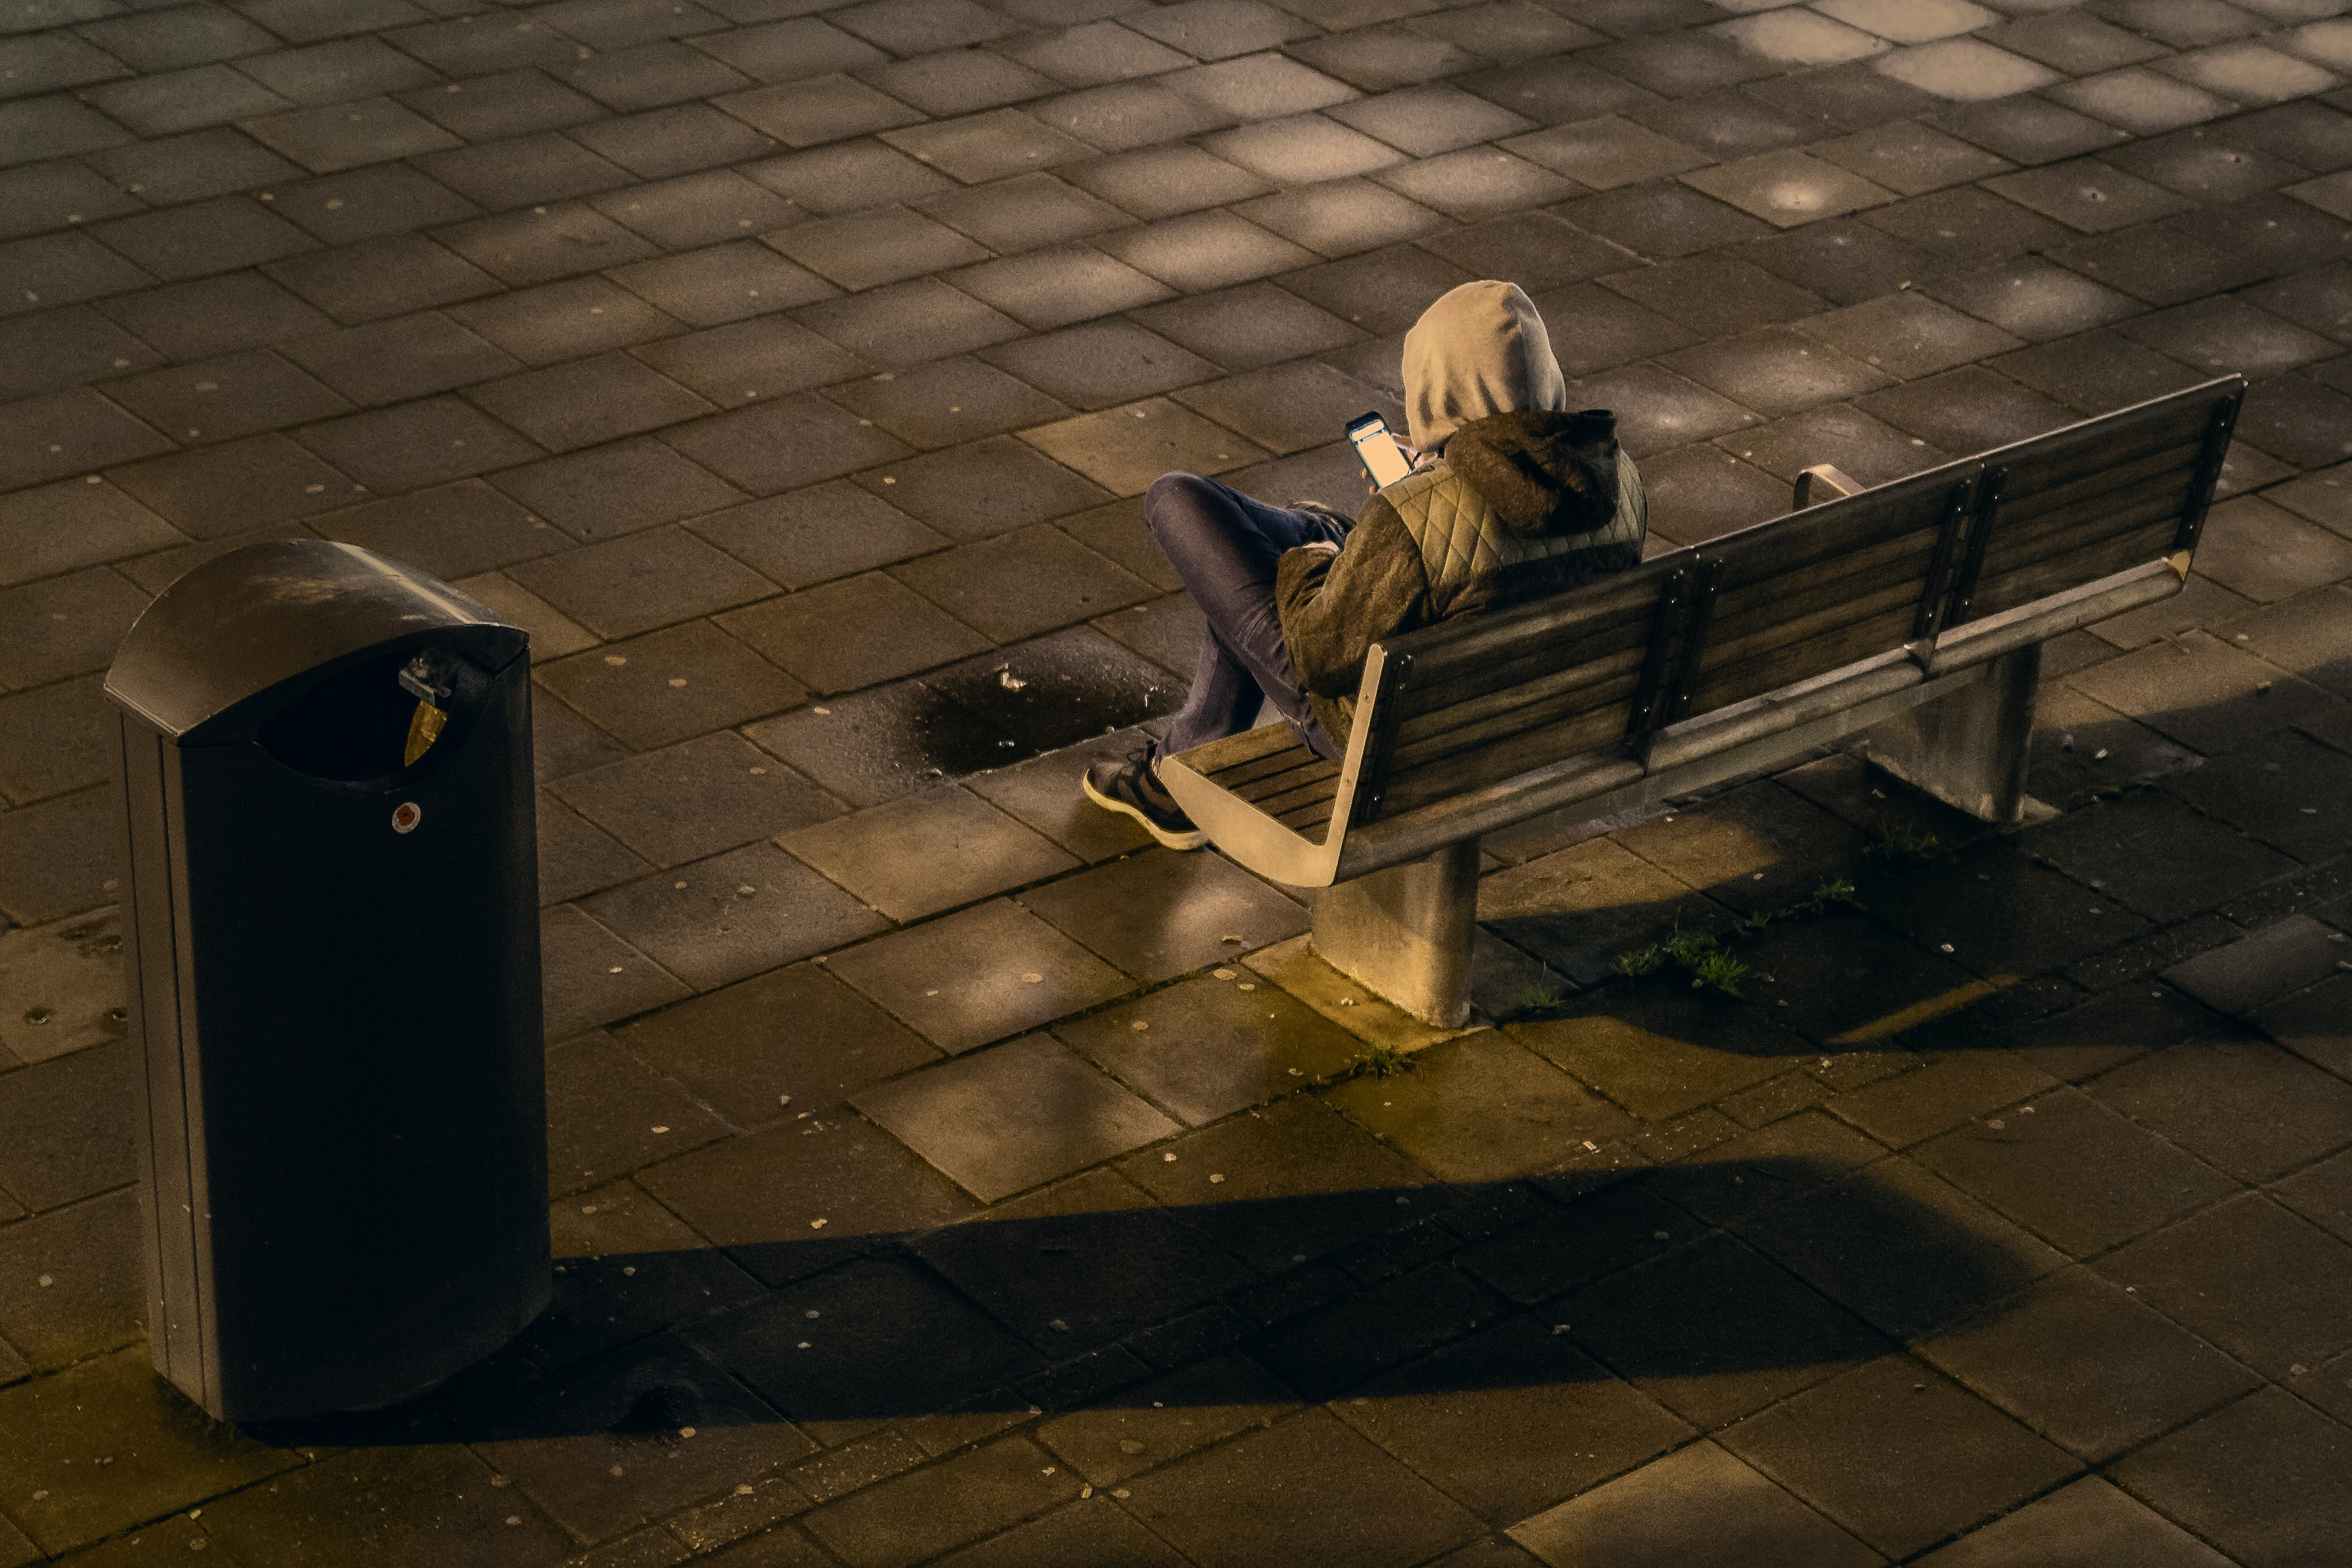 A hooded man on a bench using his smart phone beside a garbage can in a tile floor outside at night